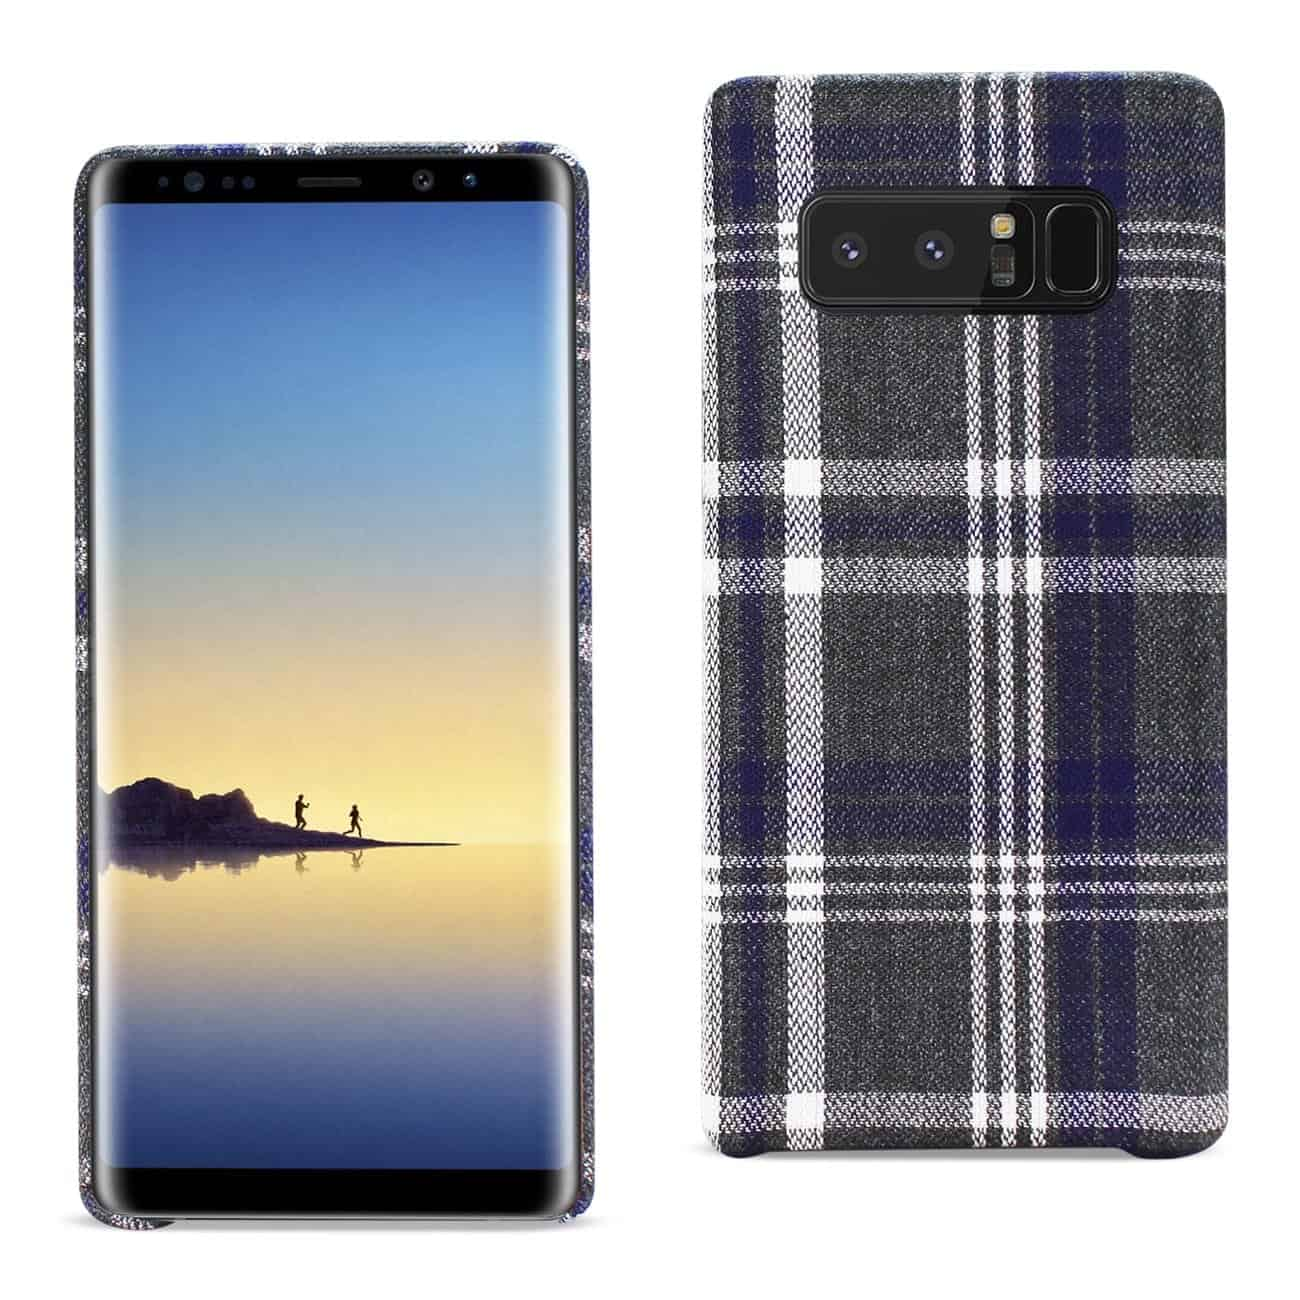 Samsung Galaxy Note 8 Checked Fabric In Black